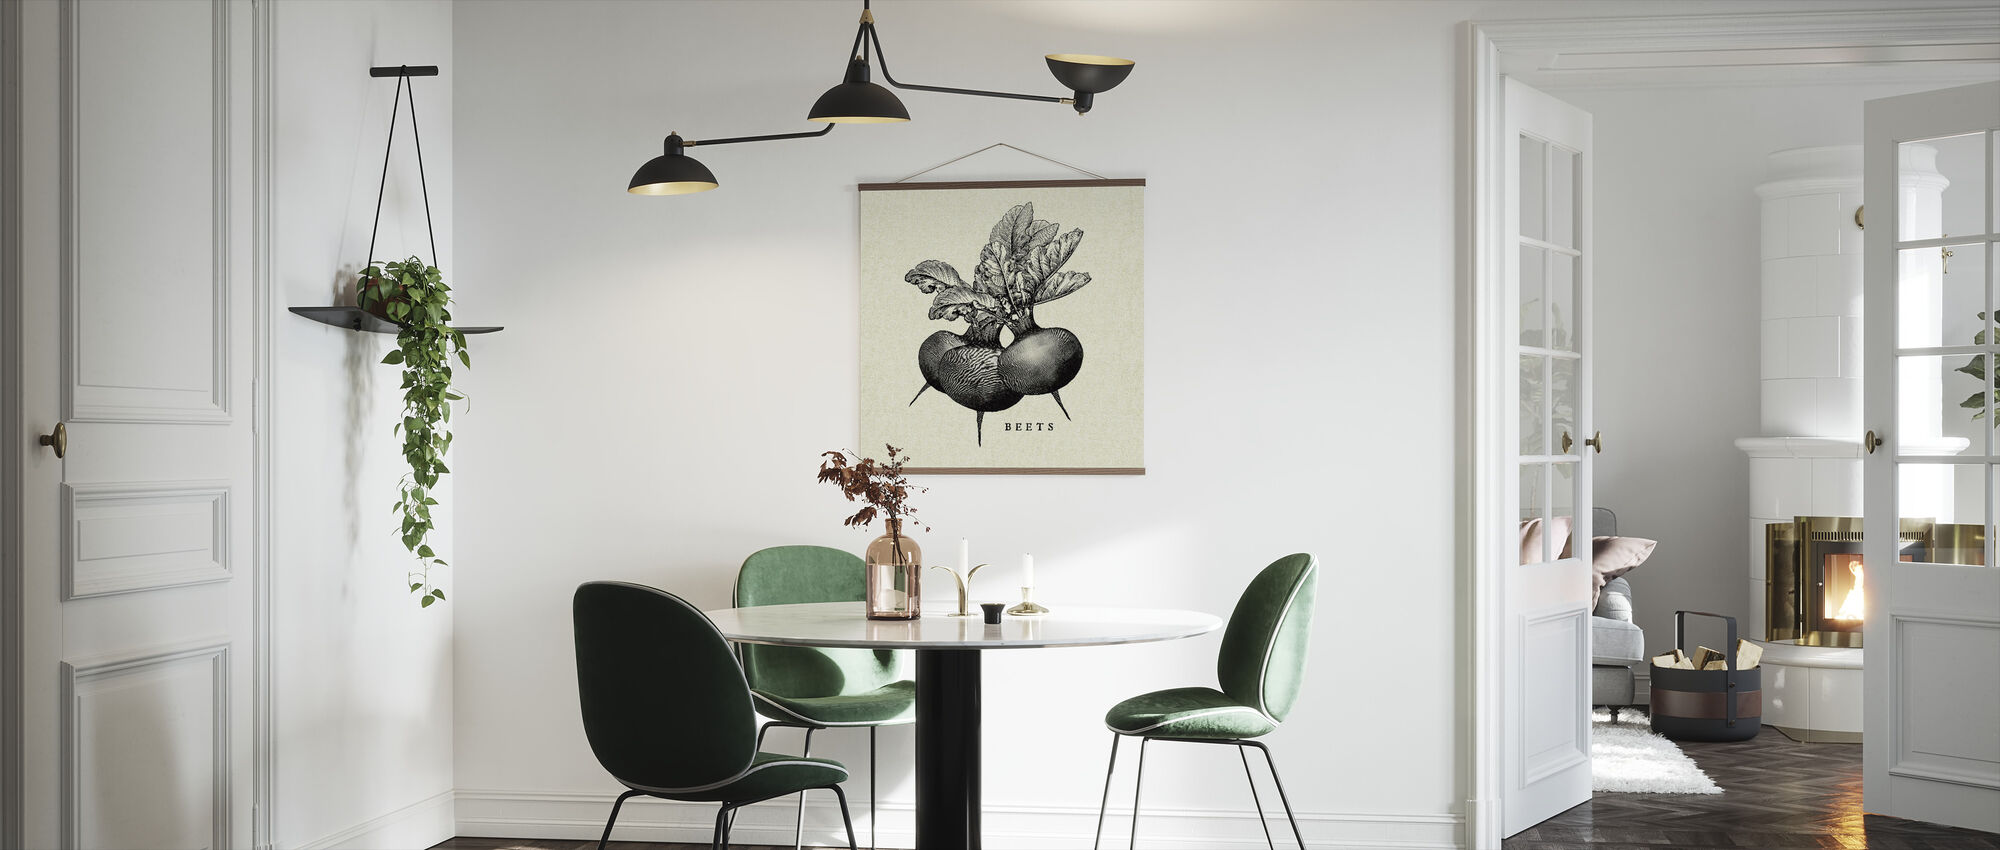 Kitchen Illustration - Beets - Poster - Kitchen